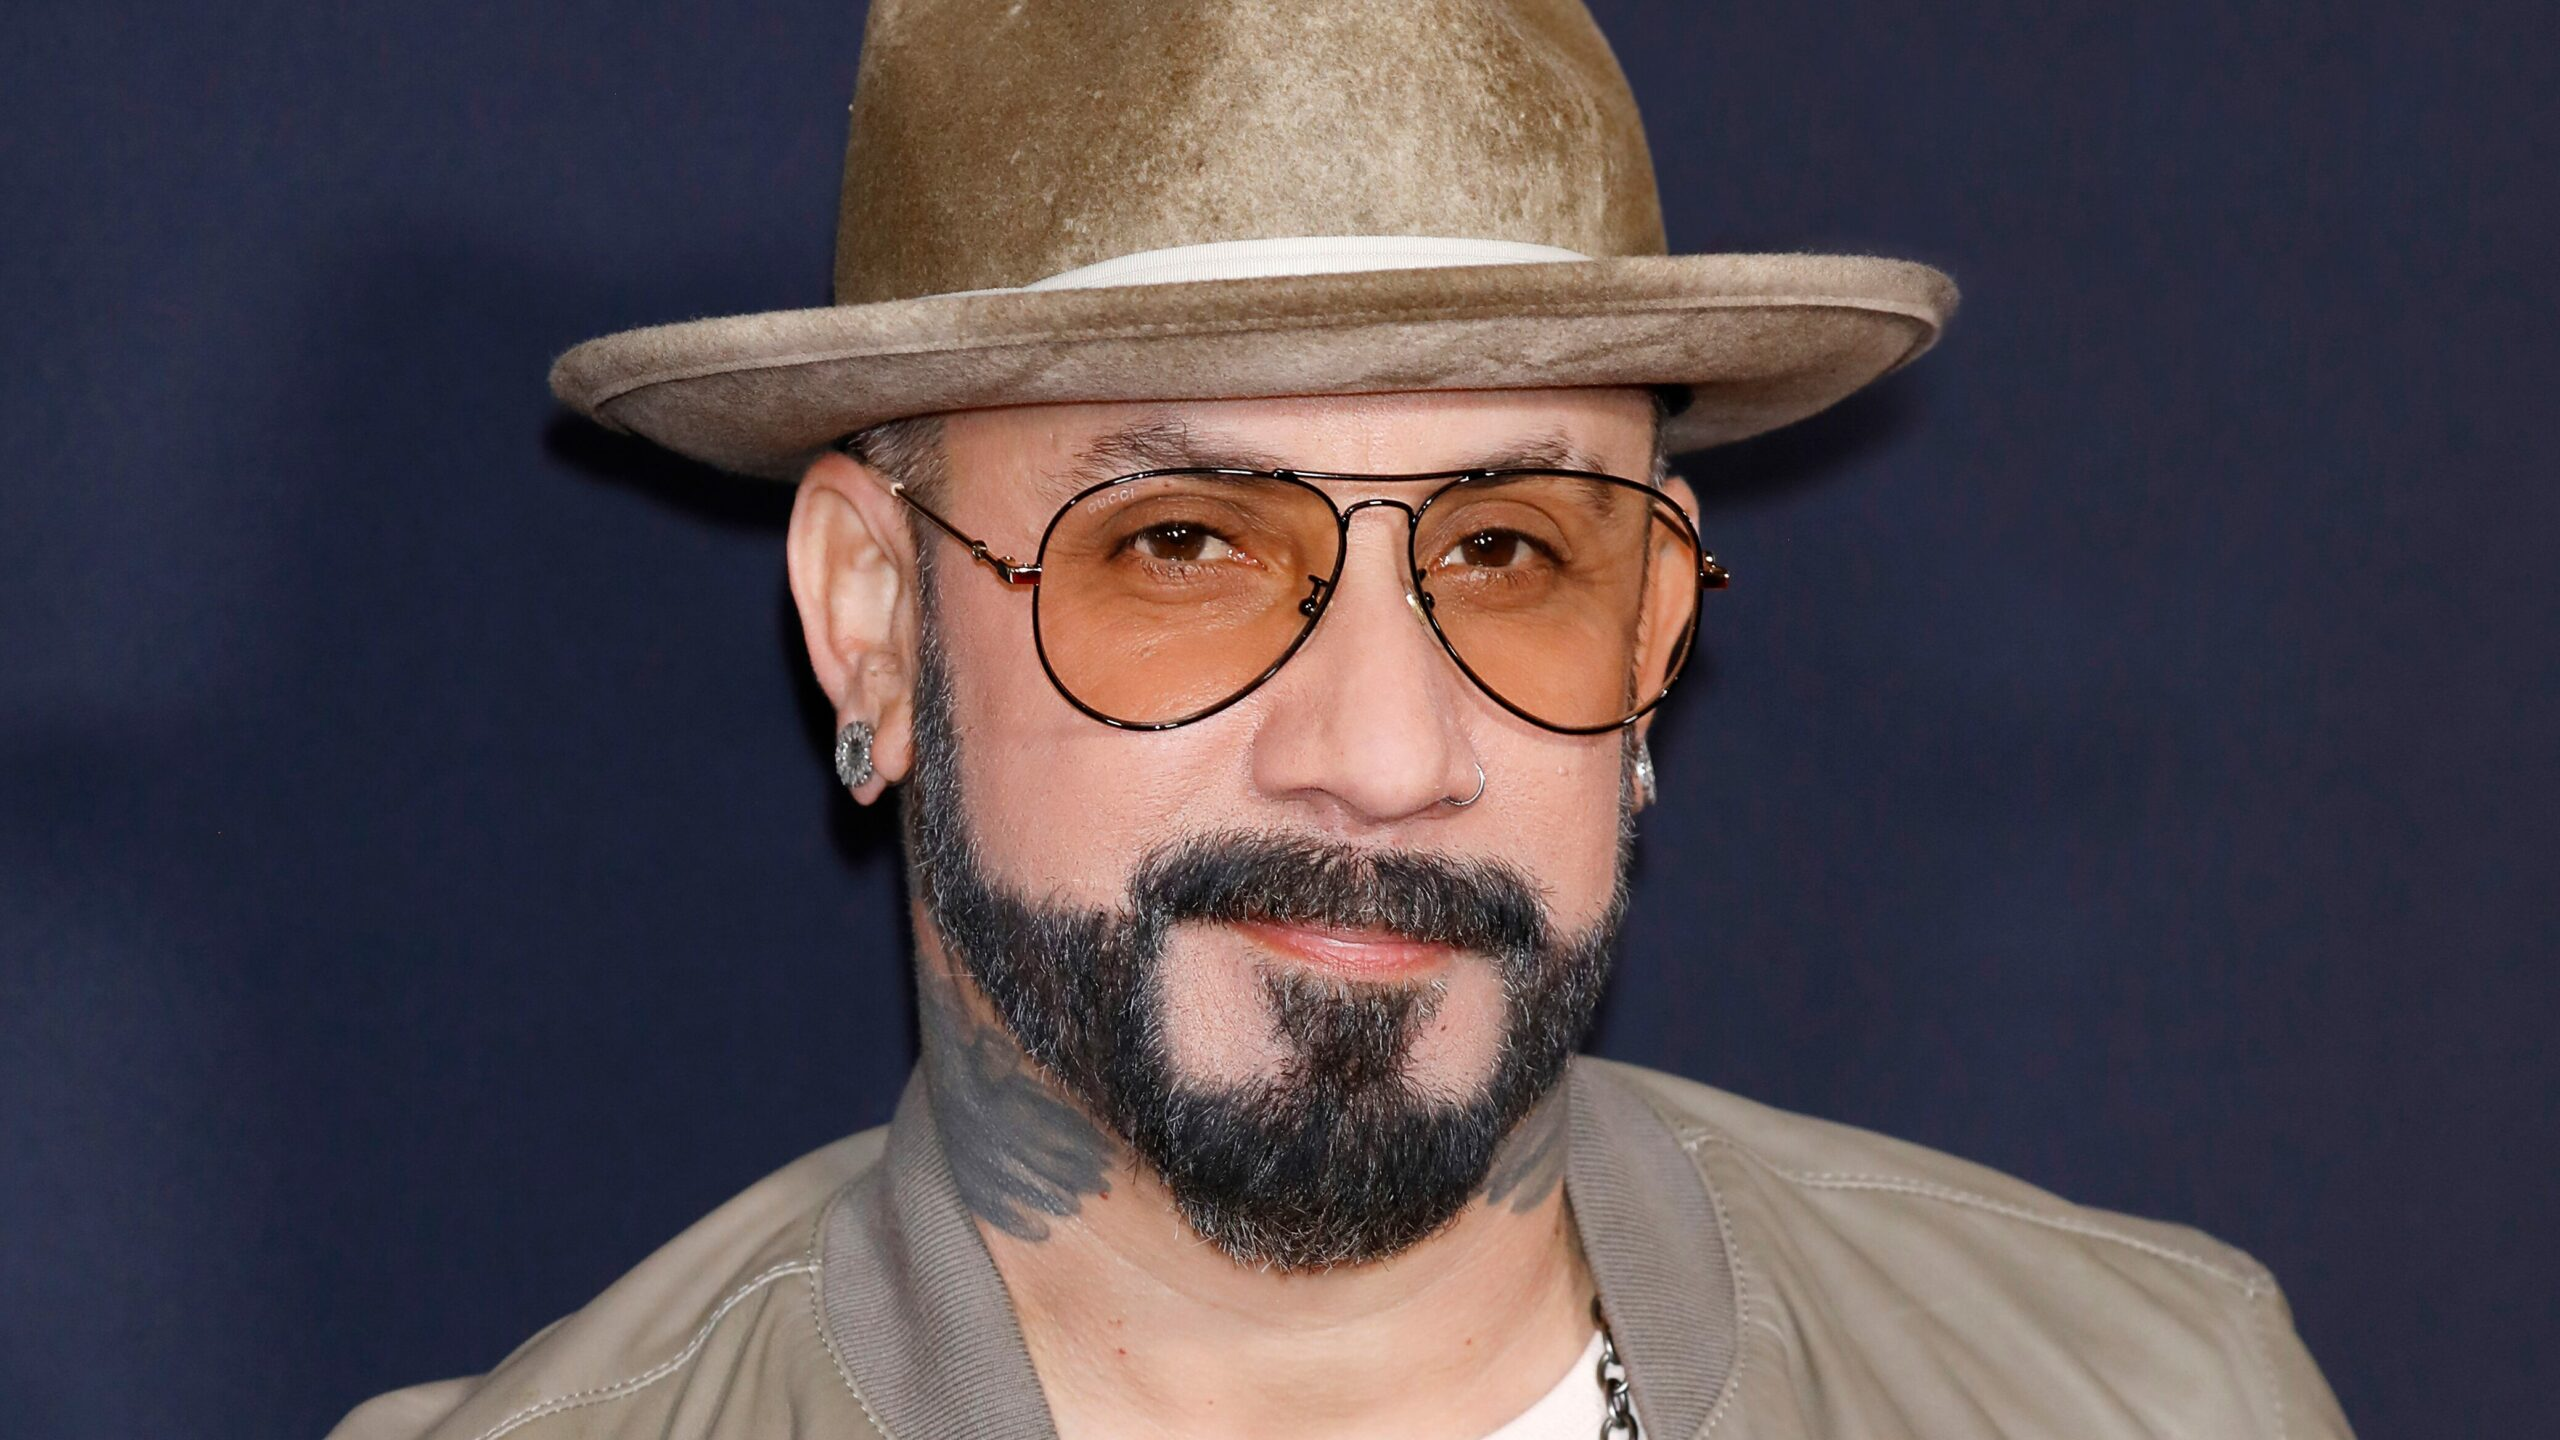 Backstreet Boys member AJ McLean joins Period 29 of 'Dancing With the Stars'